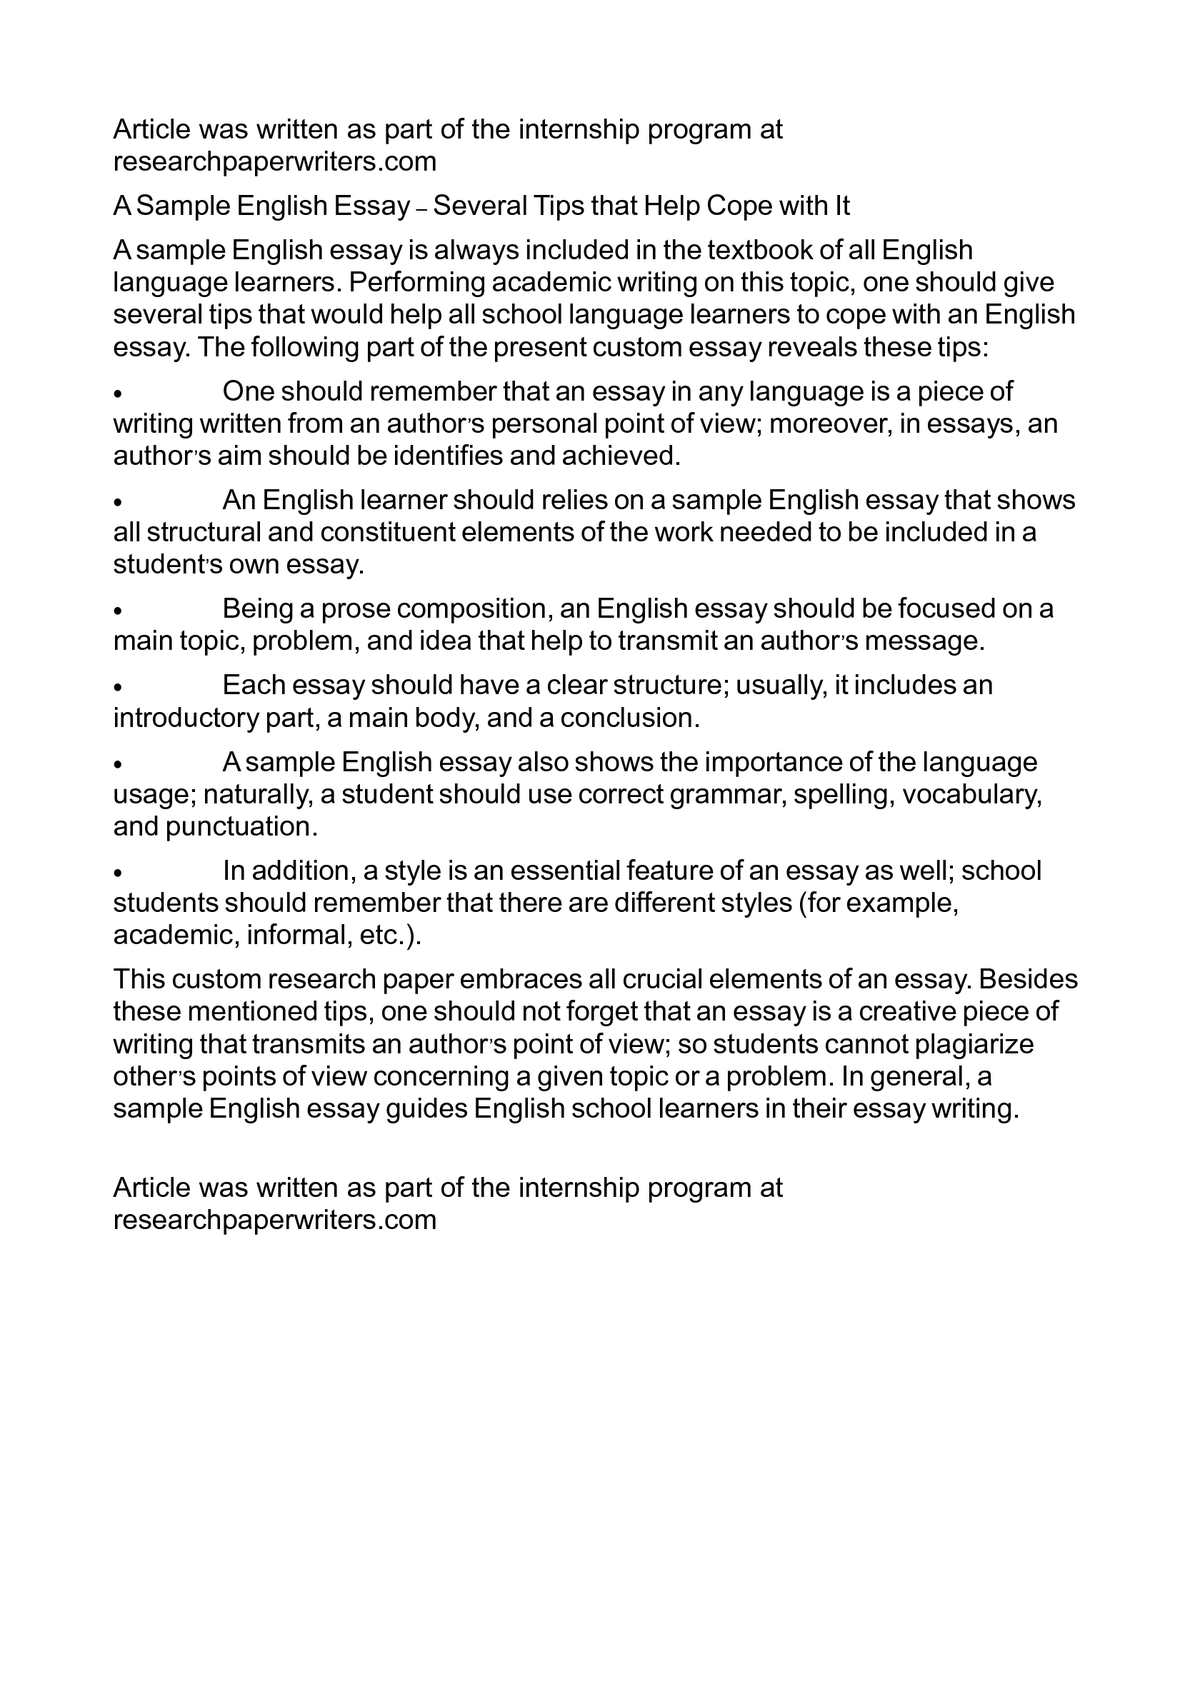 Thesis Statement In Essay  Essay On Health Awareness also Essay On Healthcare Calamo  A Sample English Essay  Several Tips That Help  English Essays For High School Students